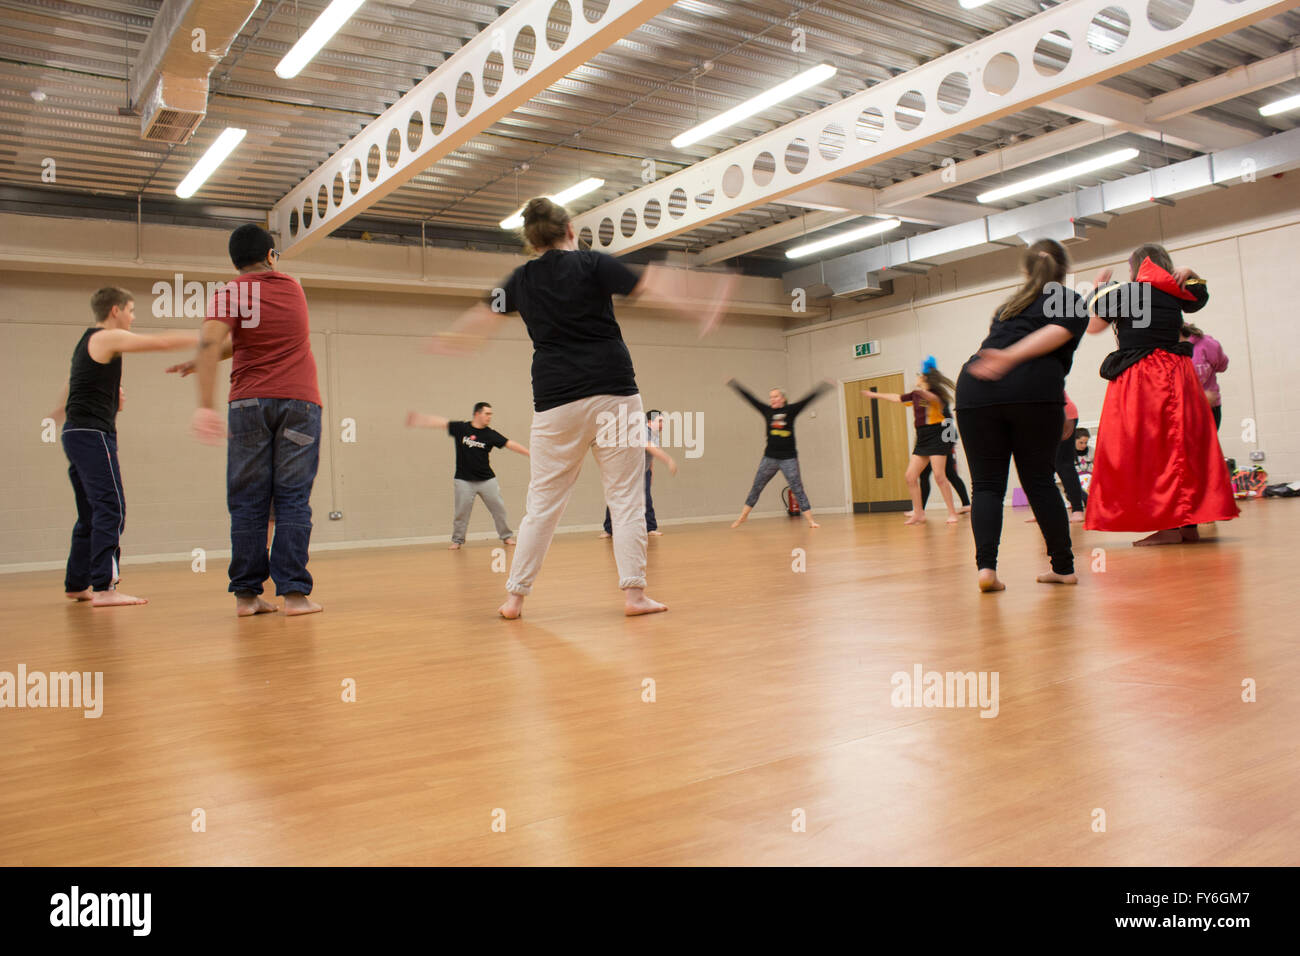 Barry Wales, 25/02/2015, Photographs taken at Barry's YMCA centre where E-Motion holds dance classes for students - Stock Image